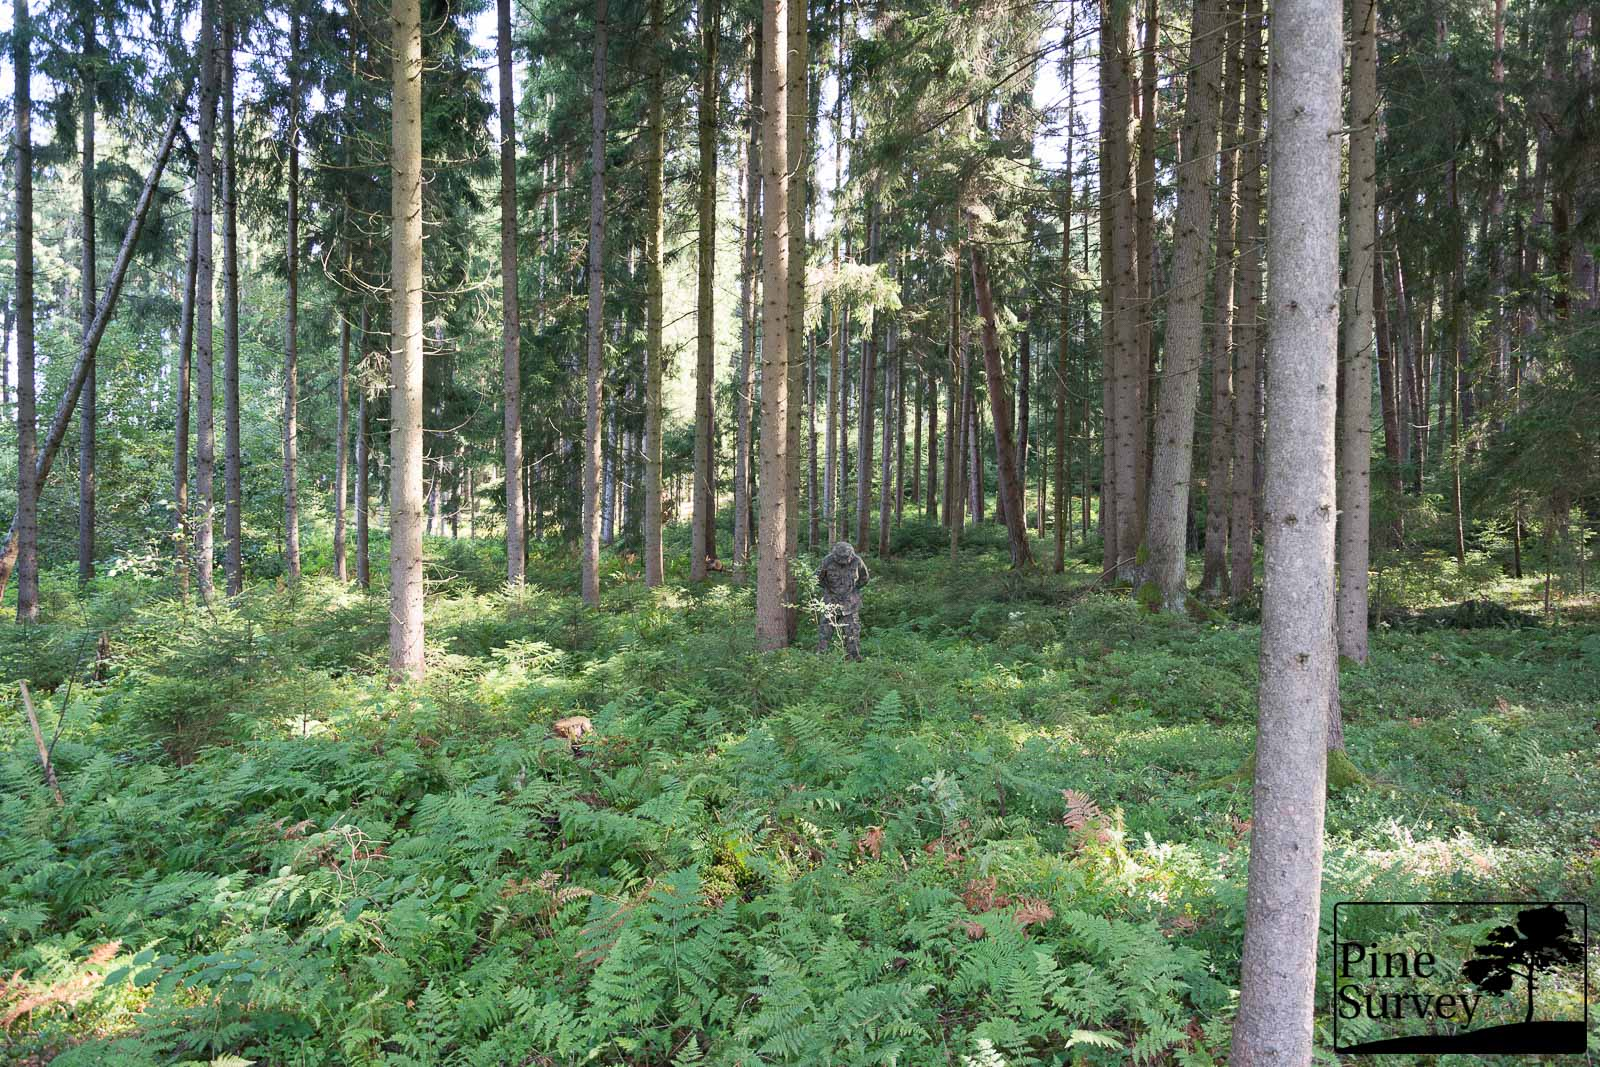 PL Woodland (wz93) - standing position, wide angle